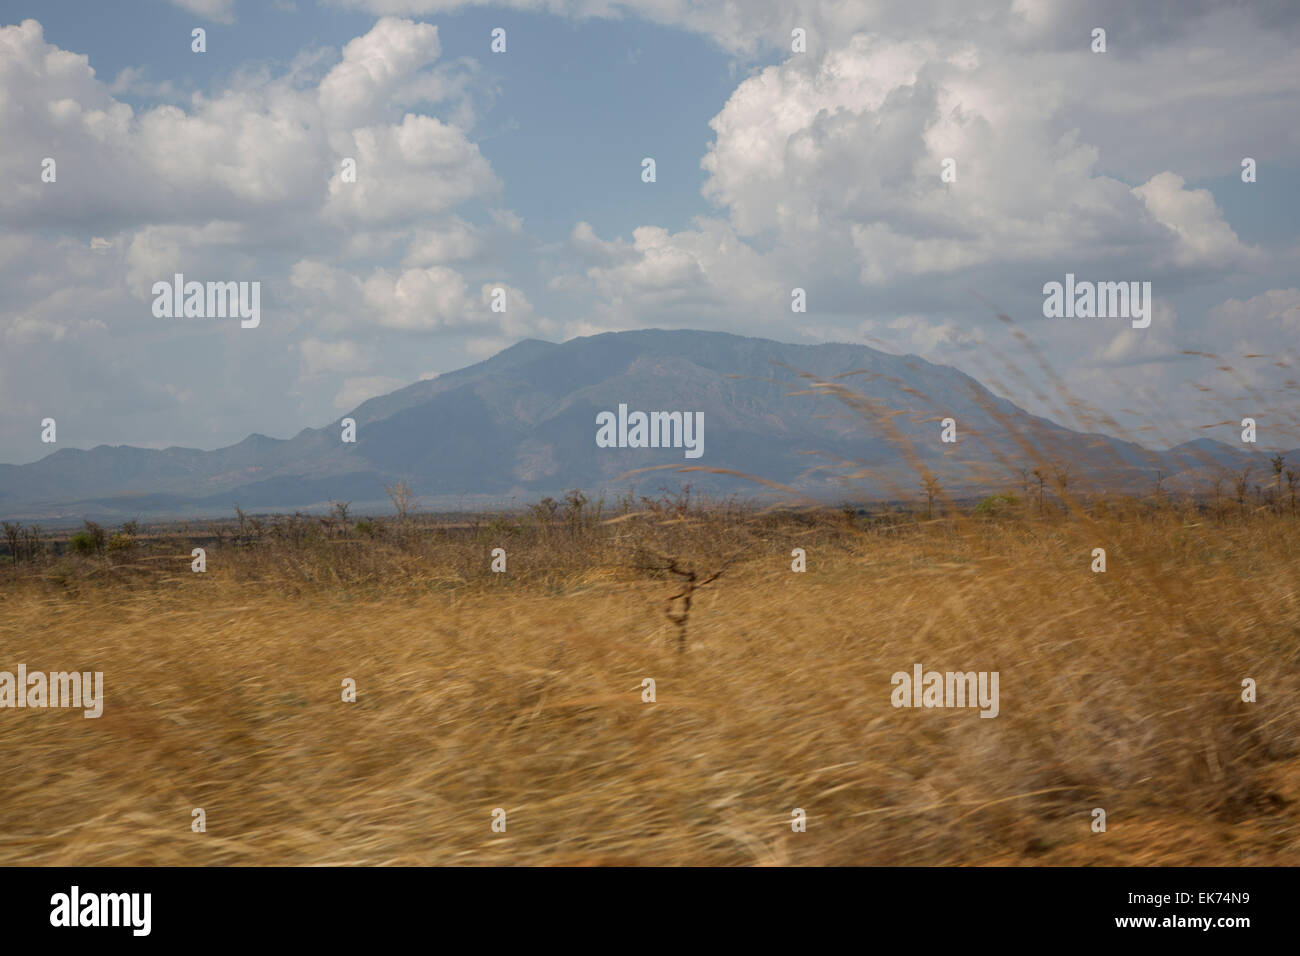 Mountain where John Garang's helicopter crashed - South Sudan. - Stock Image